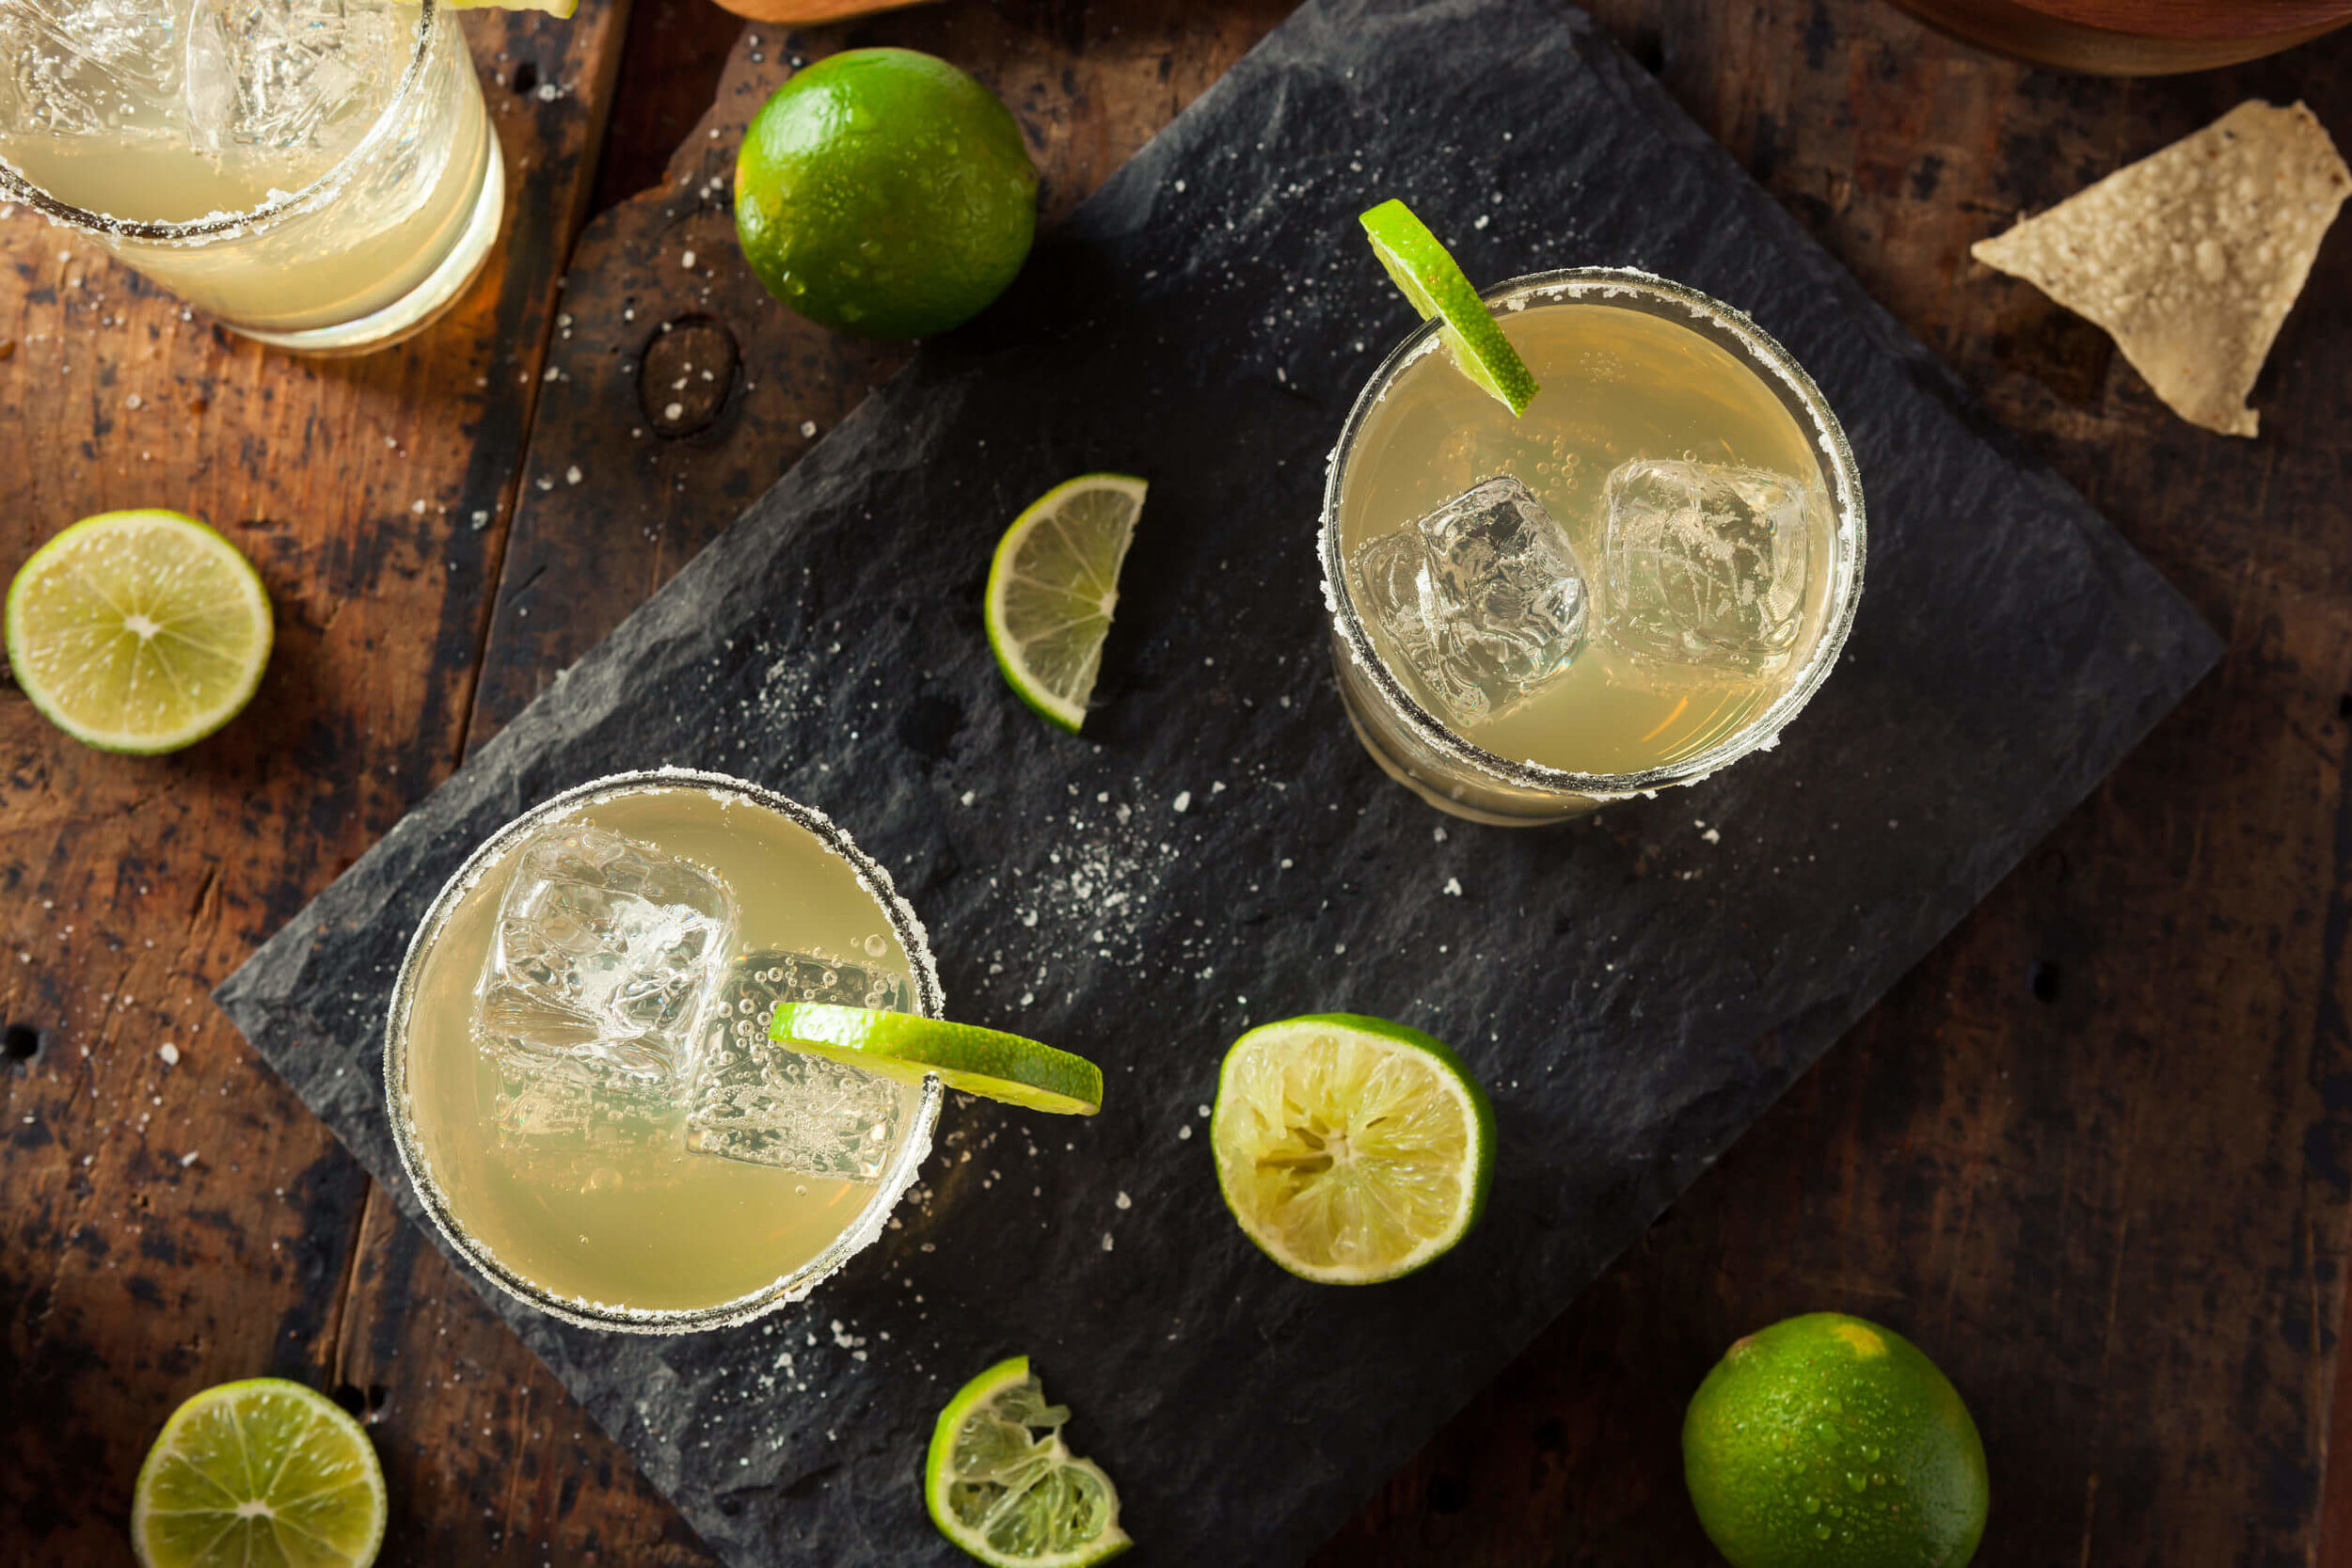 Maybe skip the rocks in your margarita | Source: Brent Hofacker © 123RF.com